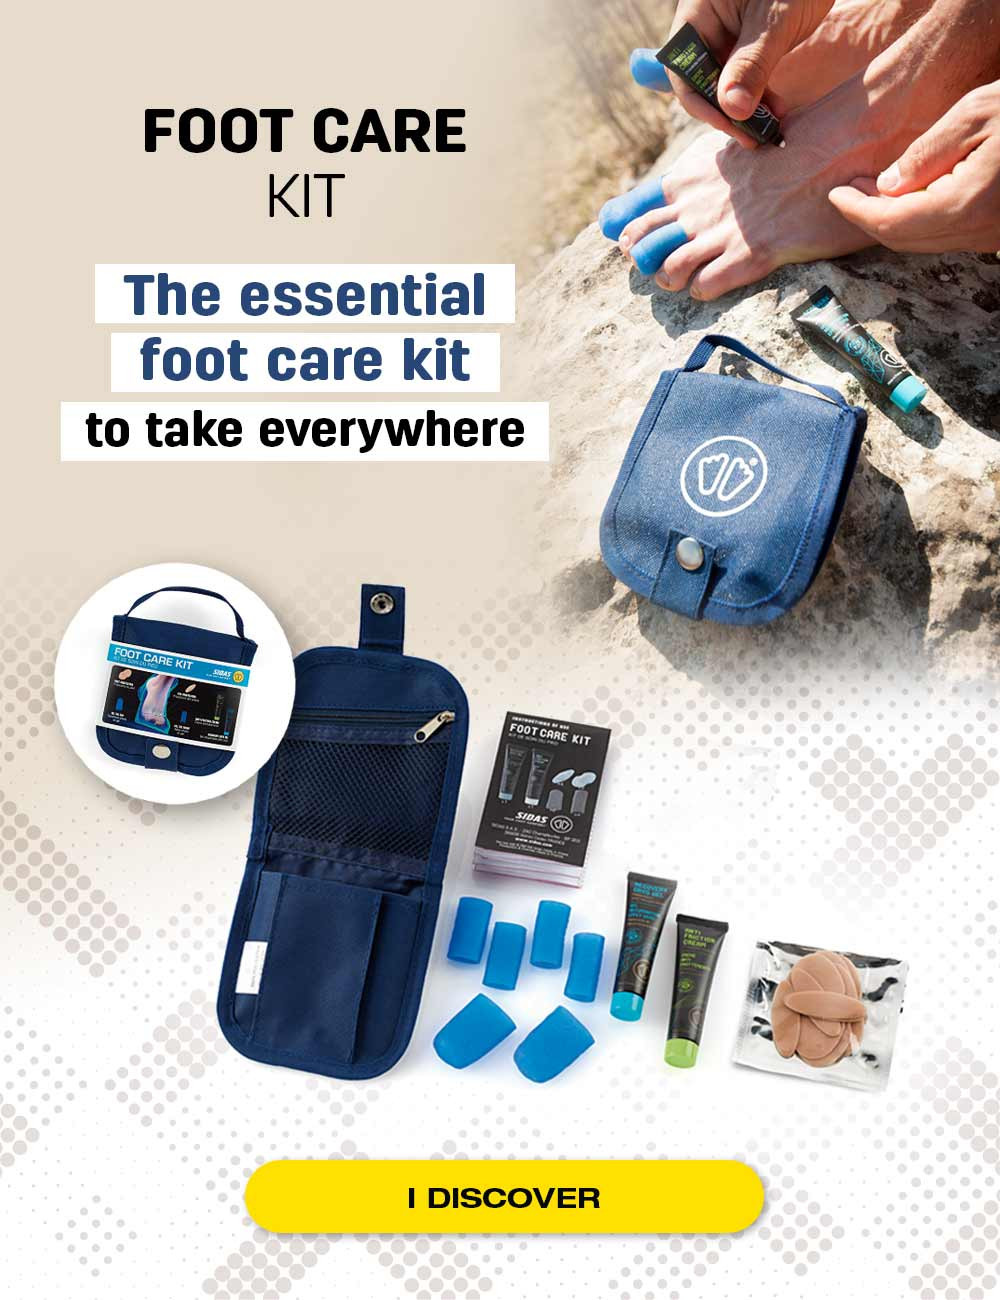 The essential footcare kit : bring it everywhere with you to protect your feet in your sports activities